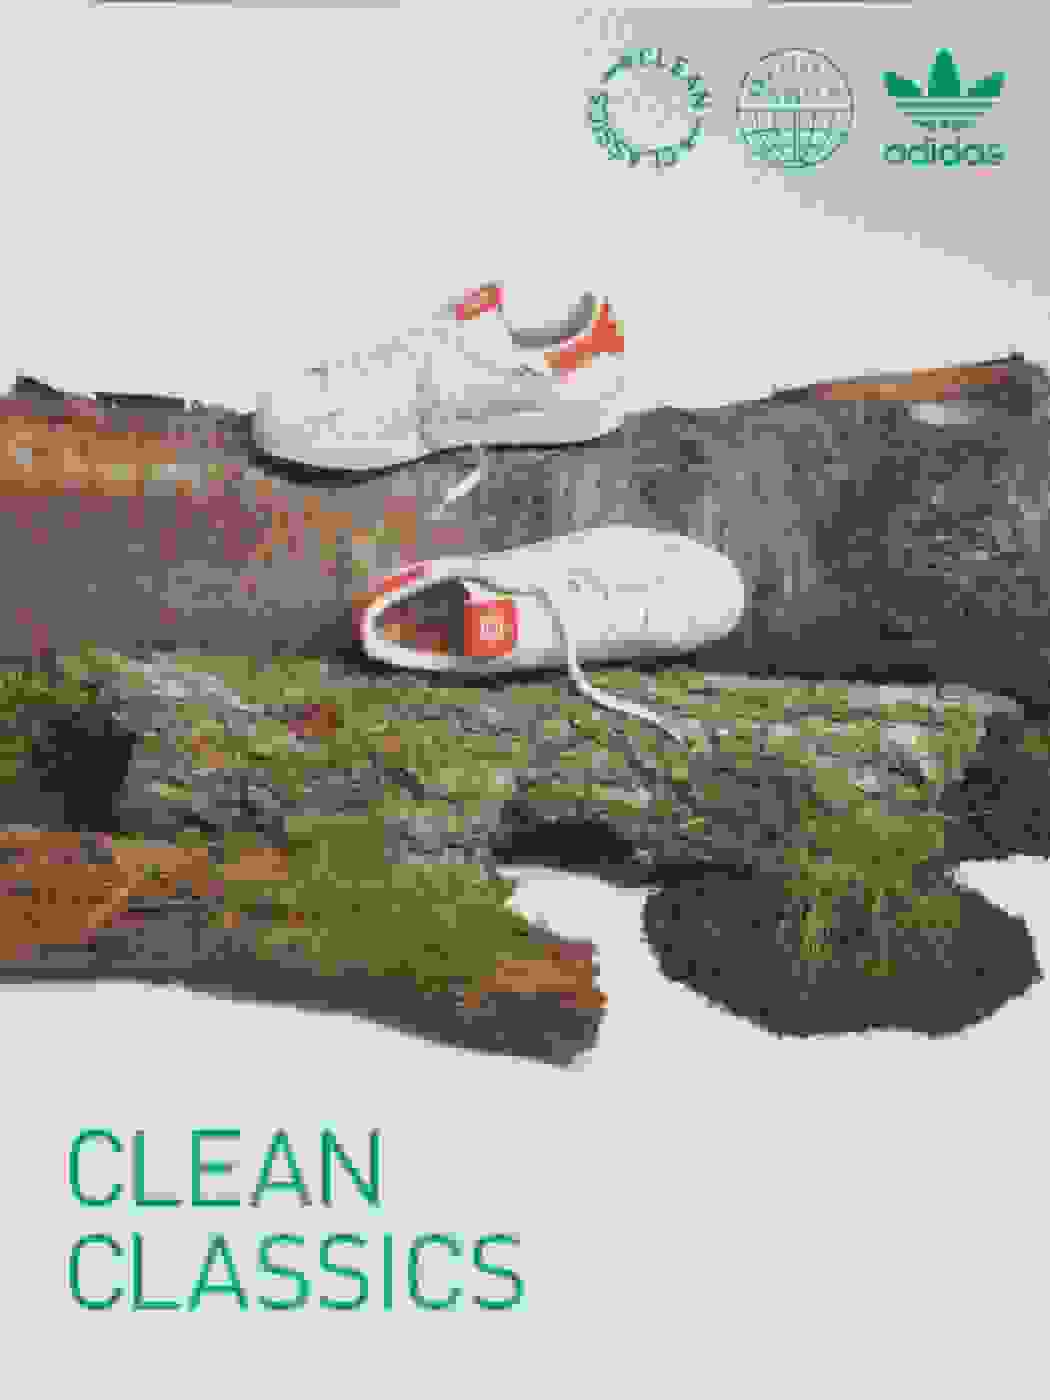 A pair of Superstar sneakers from the Clean Classics collection is perched on the trunk of a cut-down tree.